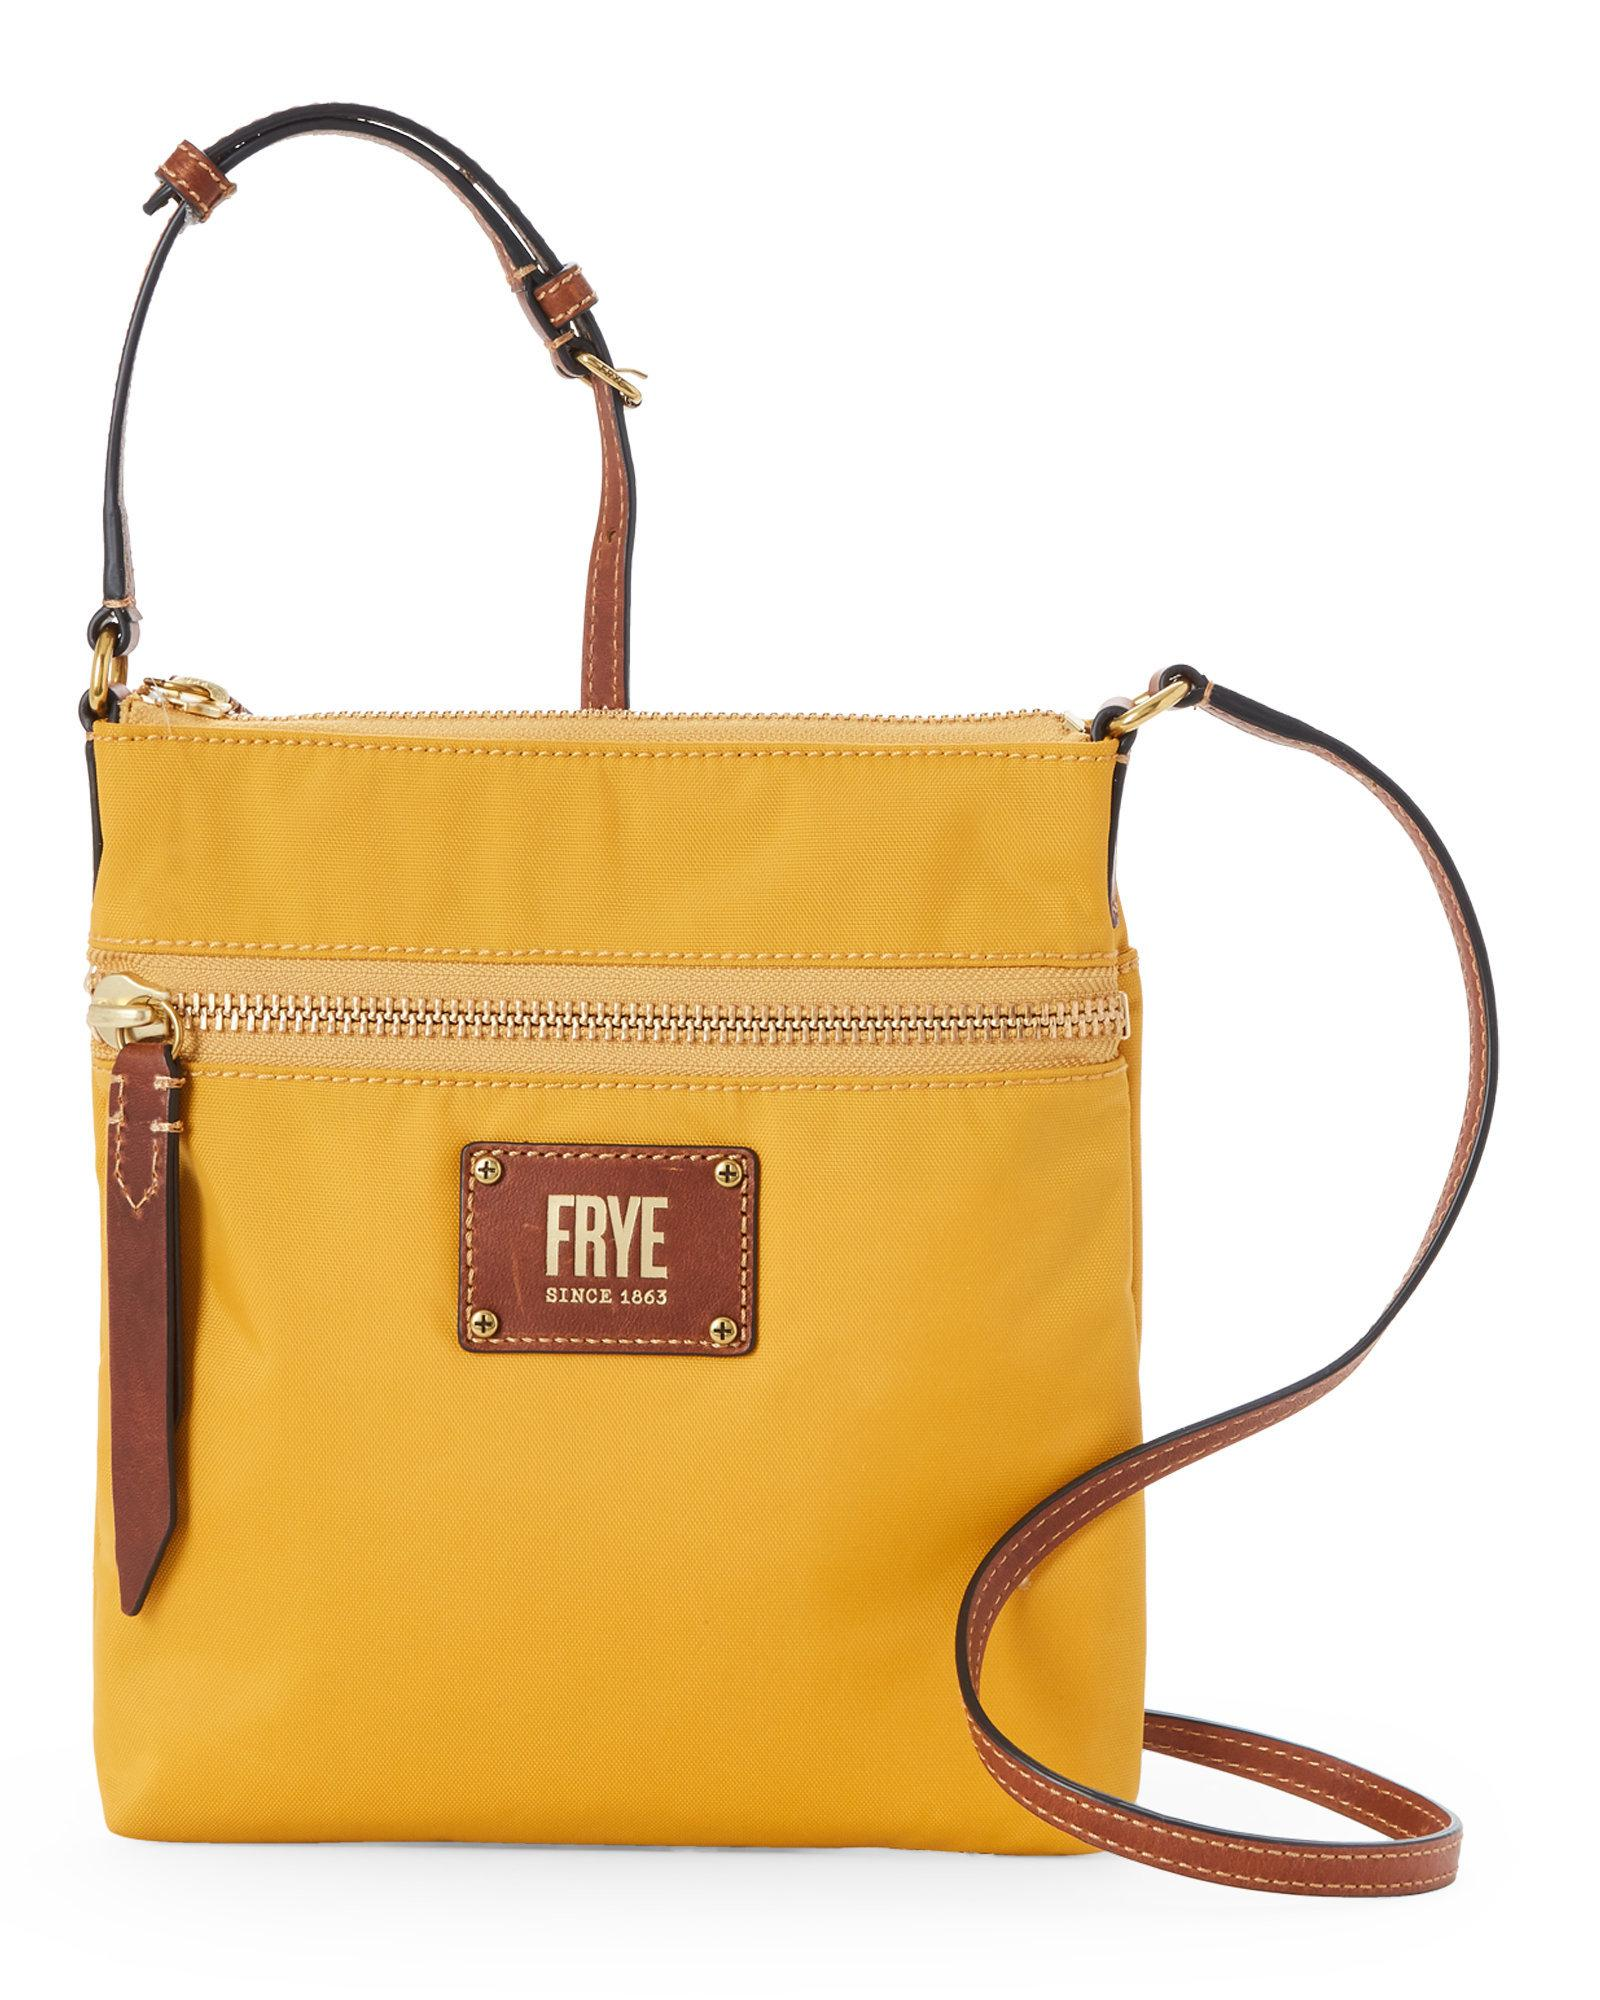 92ec2b8ec6e6 Lyst - Frye Yellow Ivy Nylon Crossbody in Yellow - Save ...